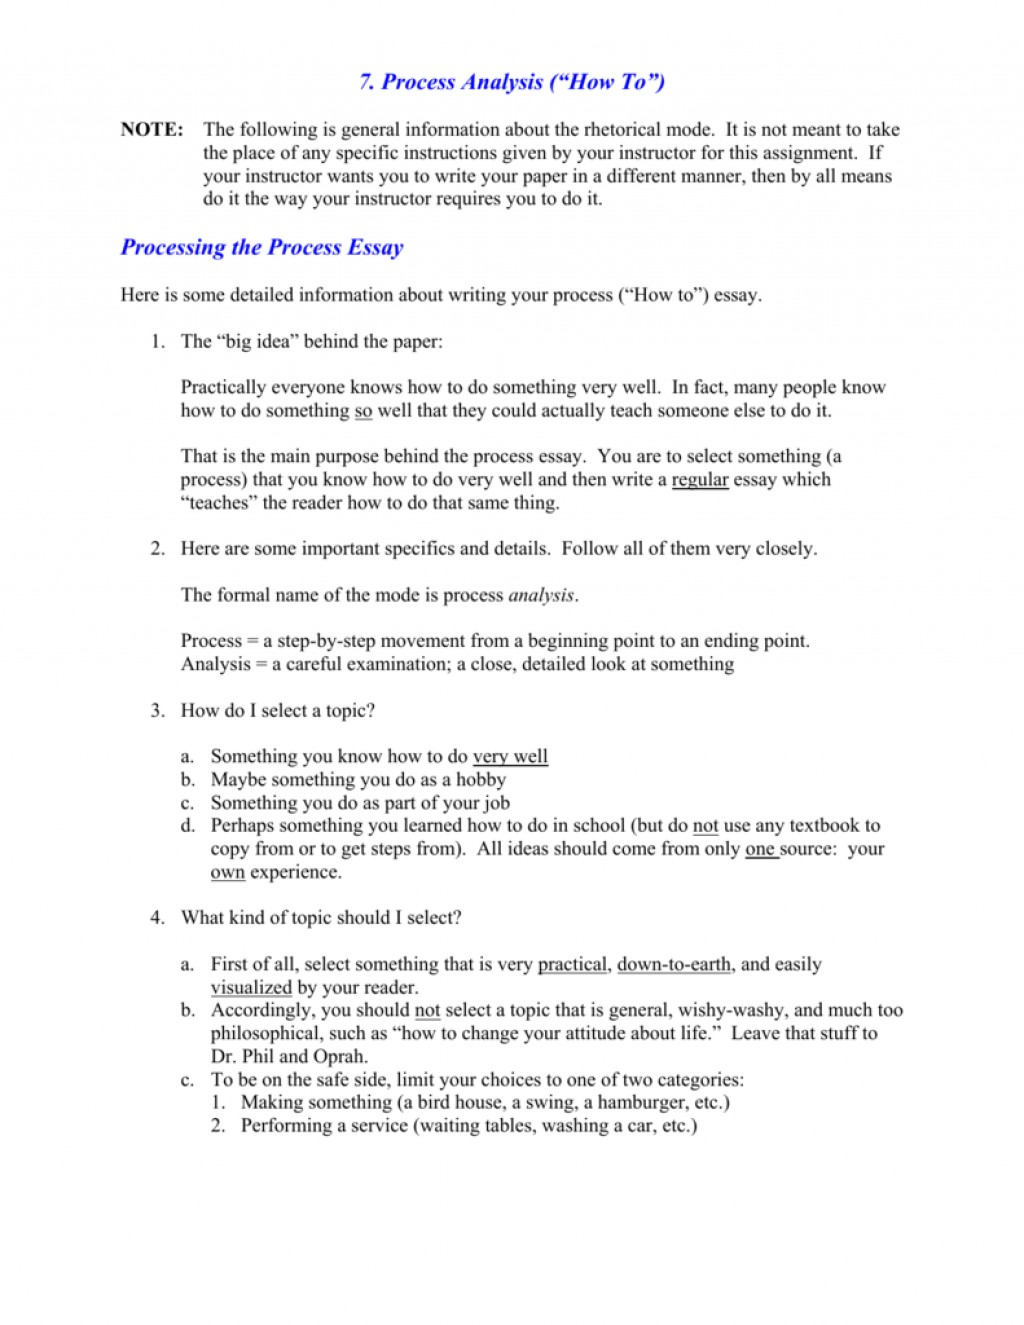 005 008099346 1 Essay Example How To Do Exceptional A Process Start Off You Write Analysis Large